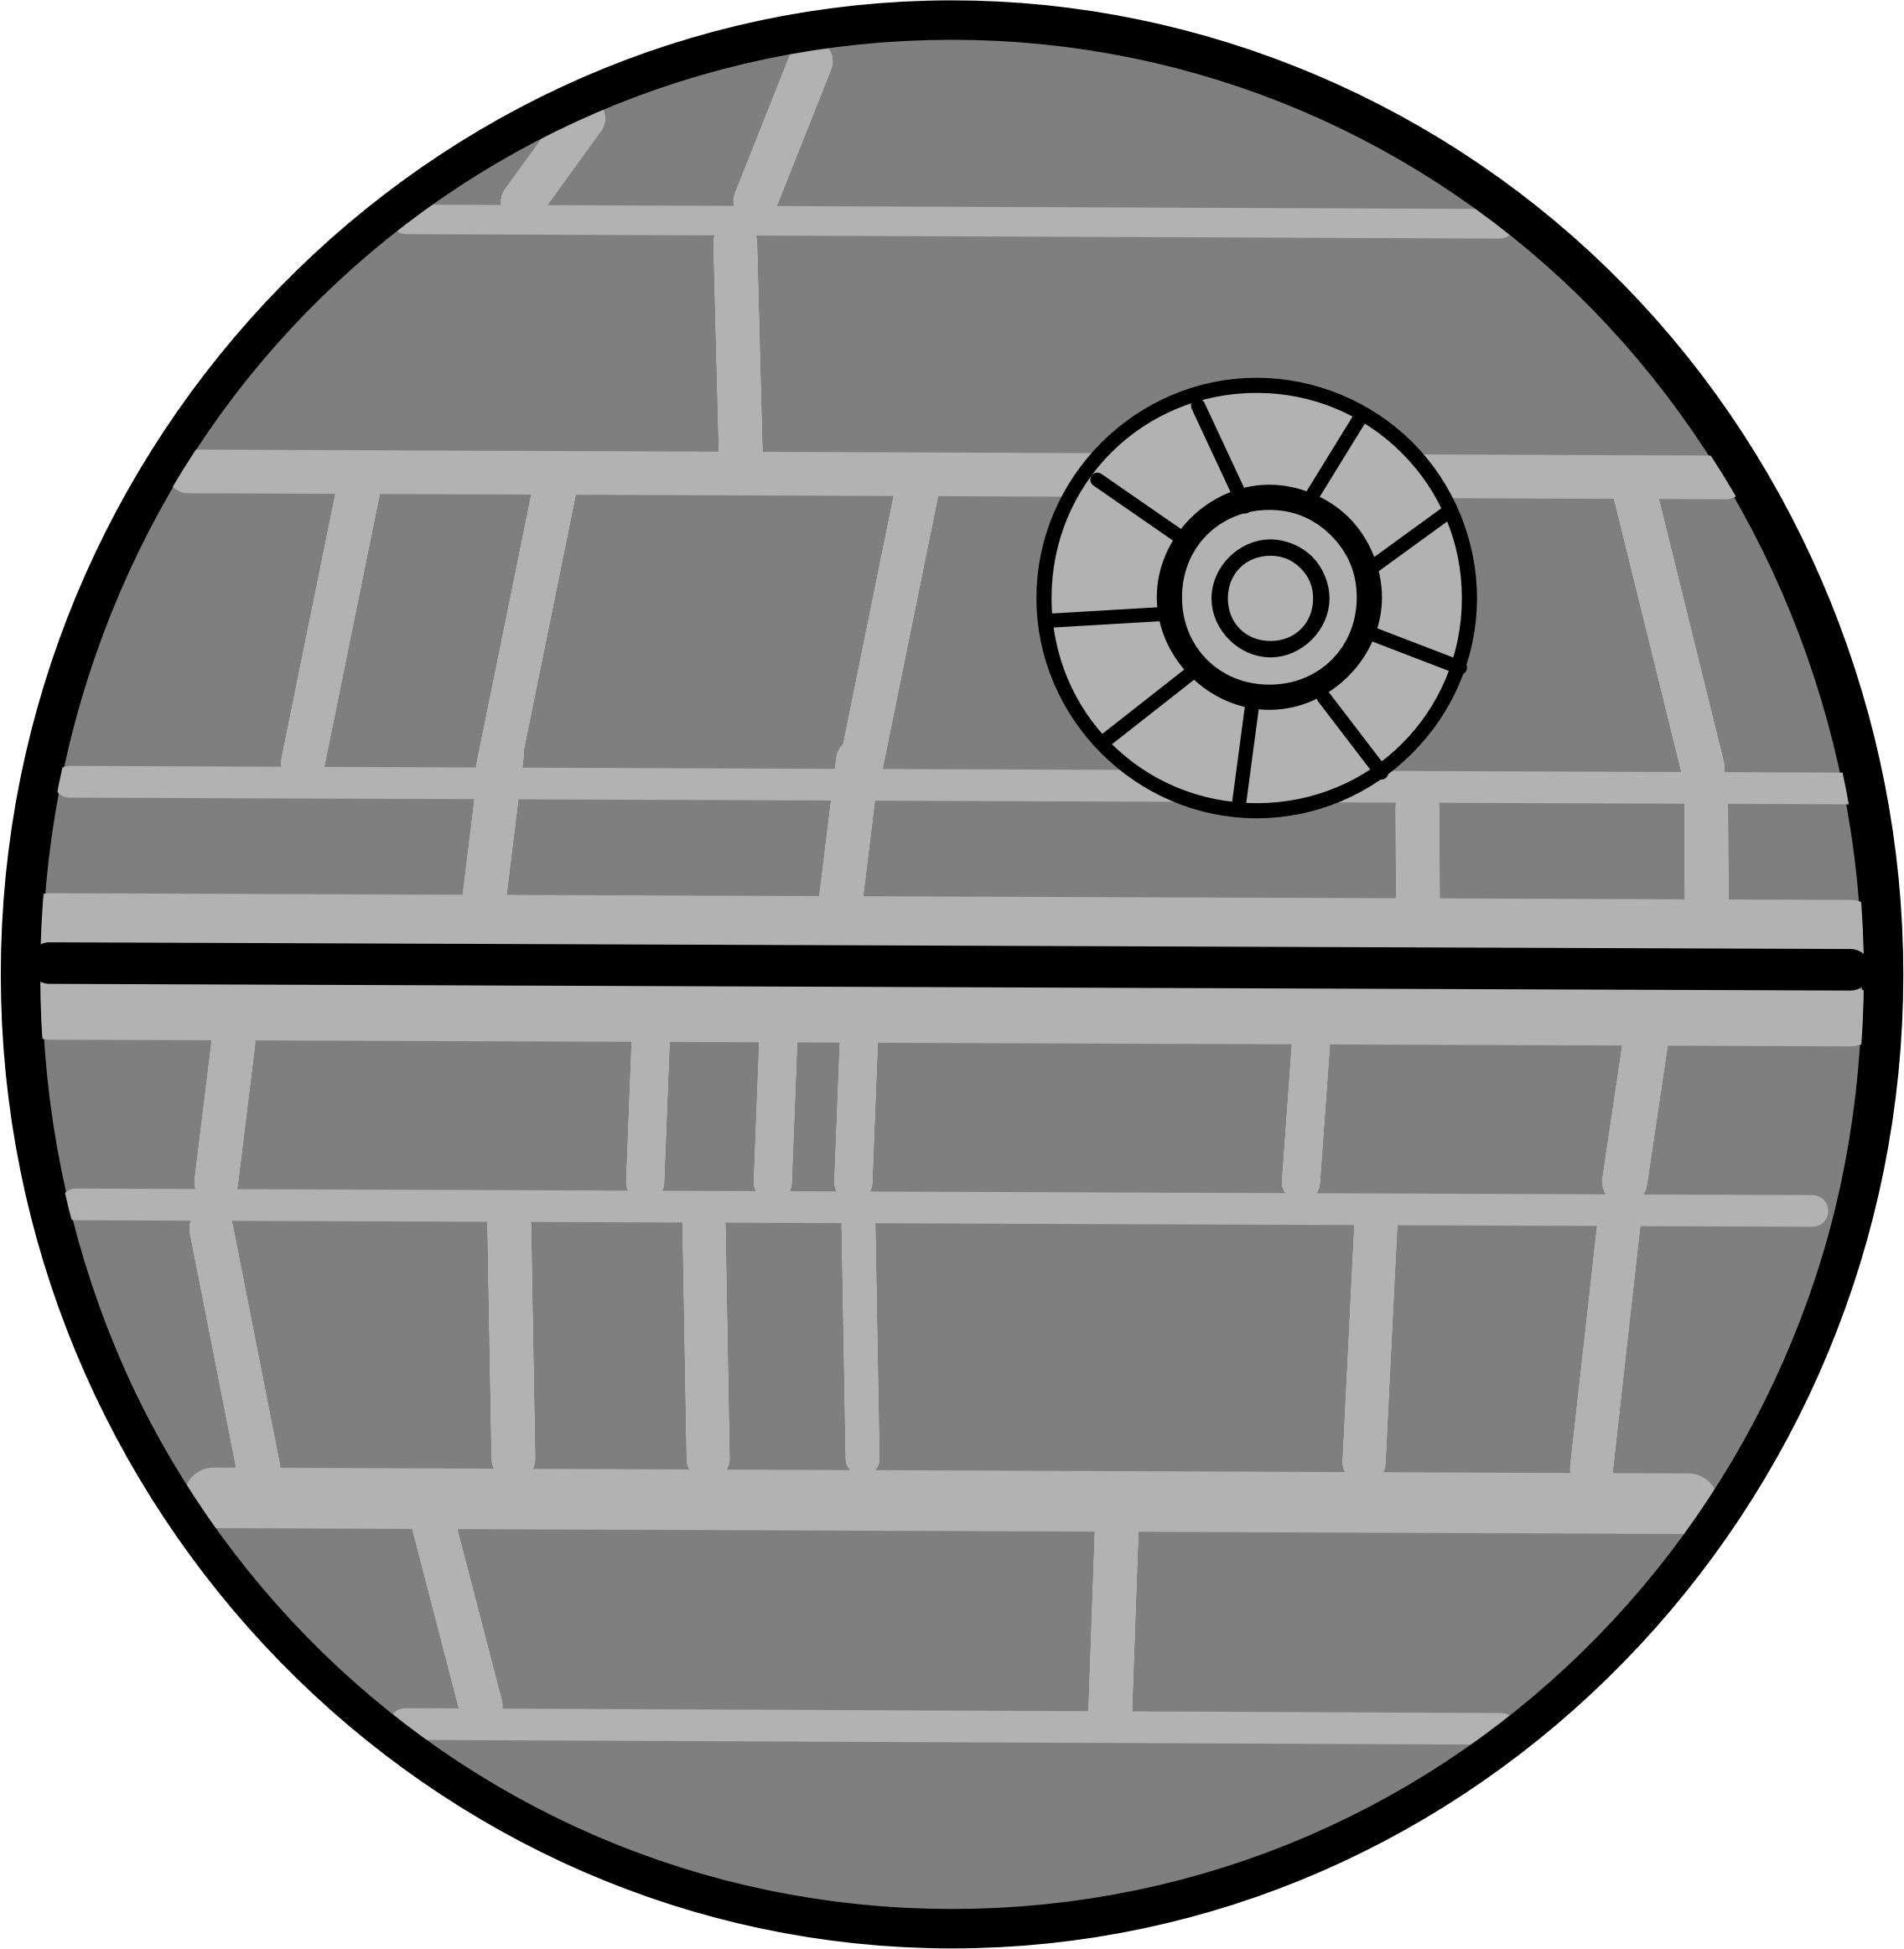 Png death star. Clipart bold big image